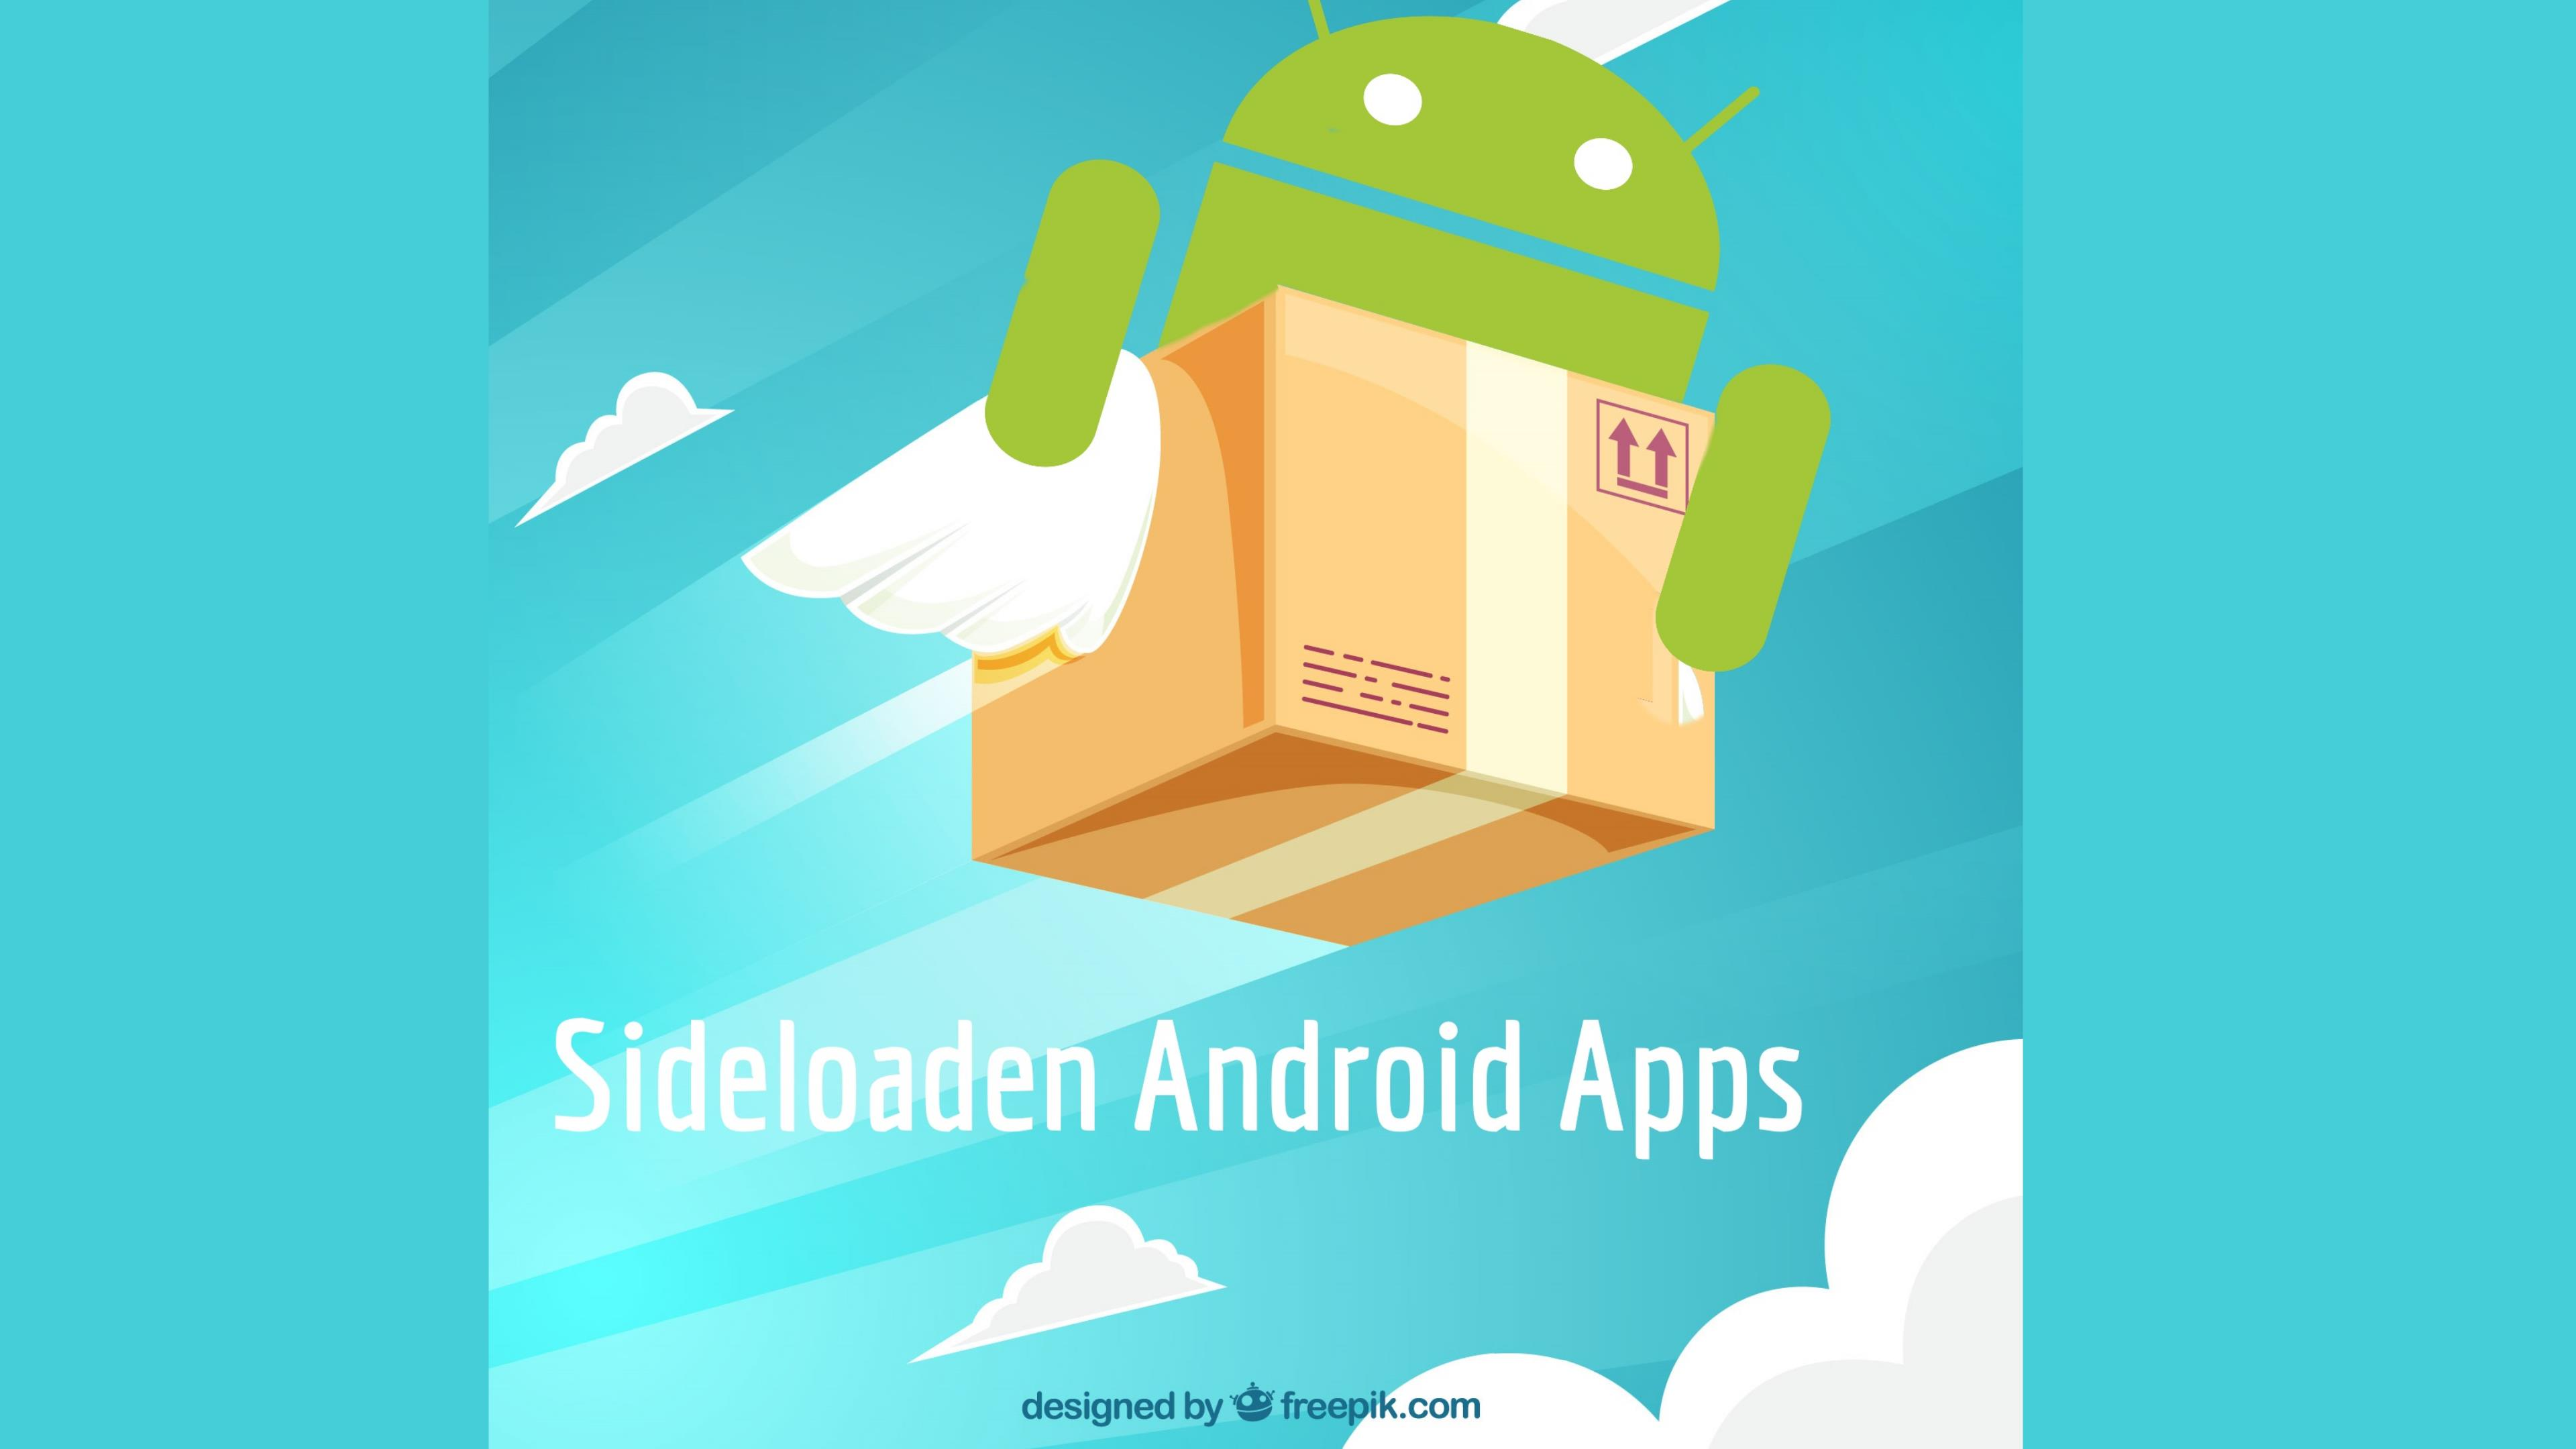 Sideloaden Android Apps